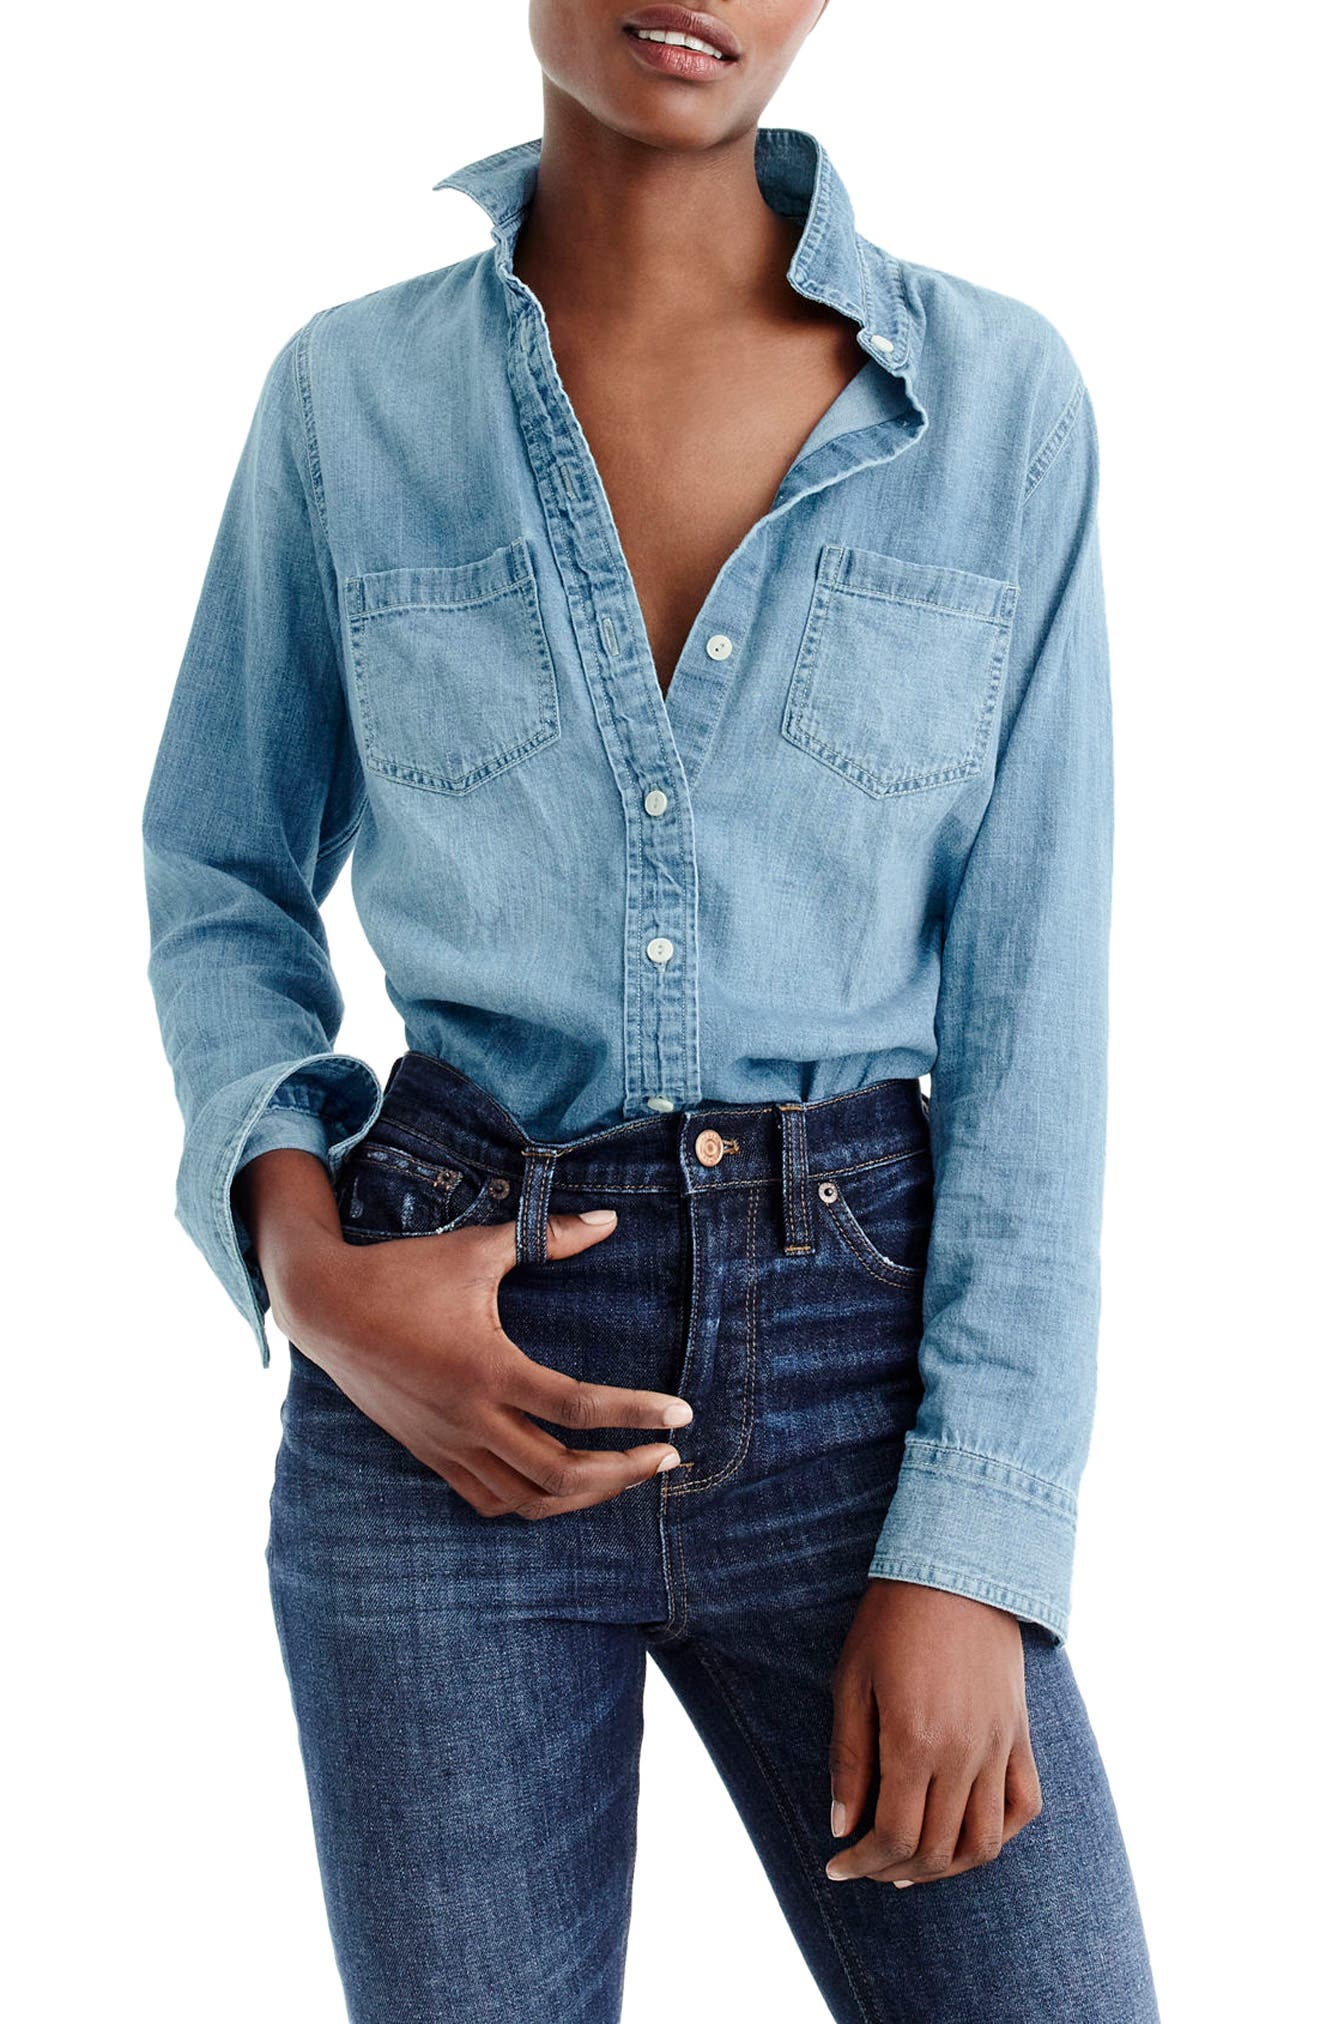 Main Image - J.Crew Everyday Chambray Shirt (Regular & Petite)